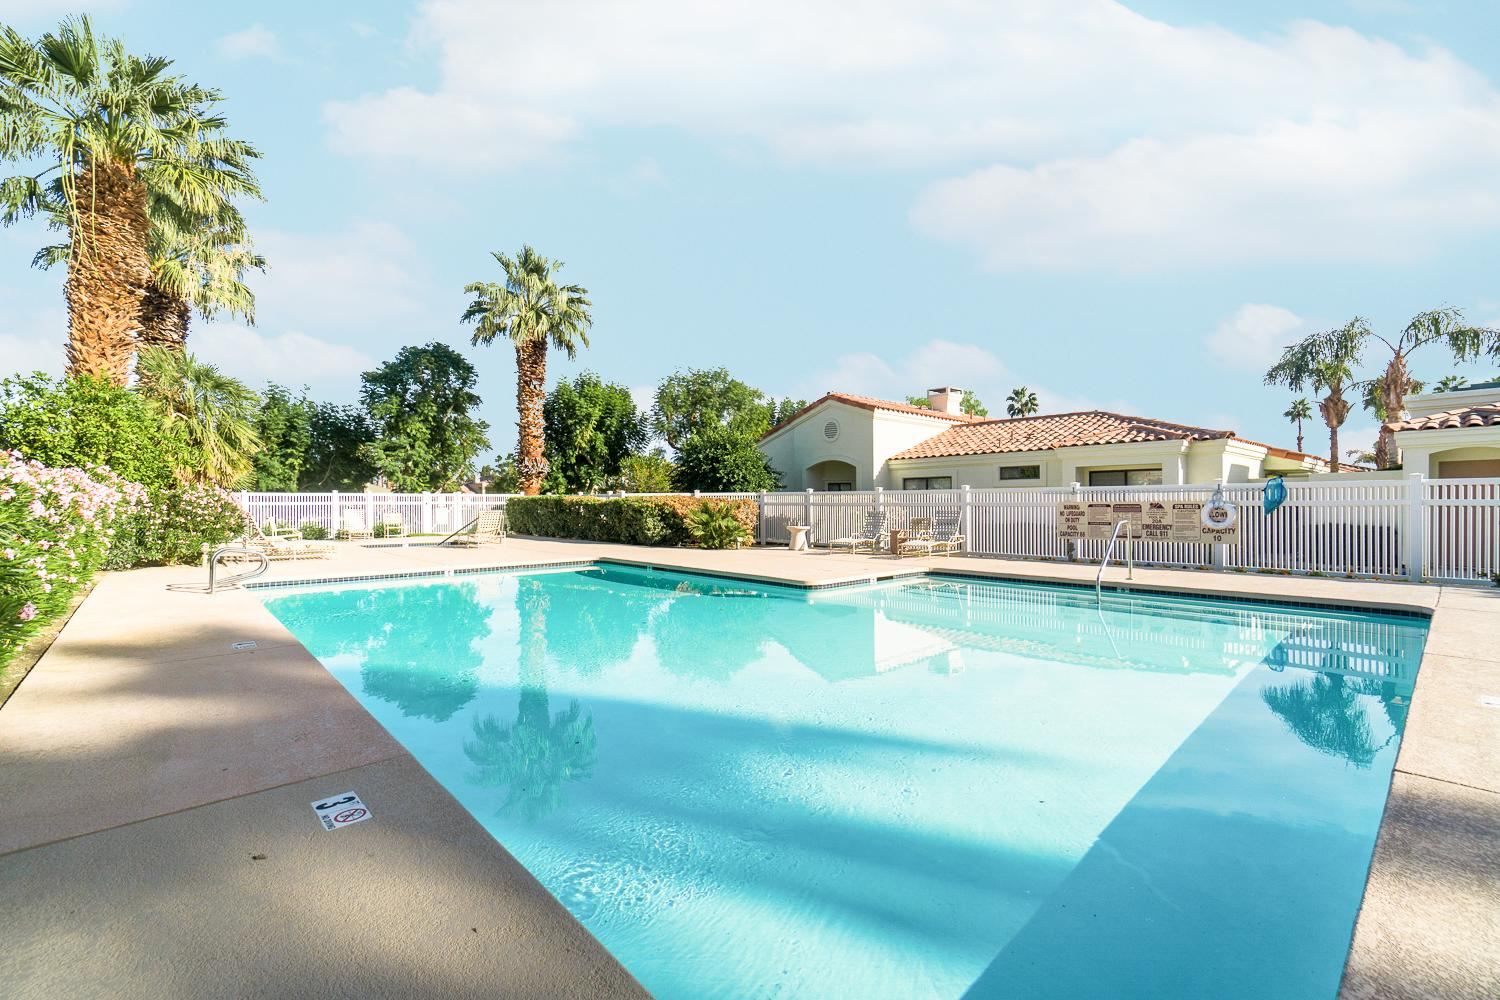 Cool off in the shared pool around the corner from your townhouse.